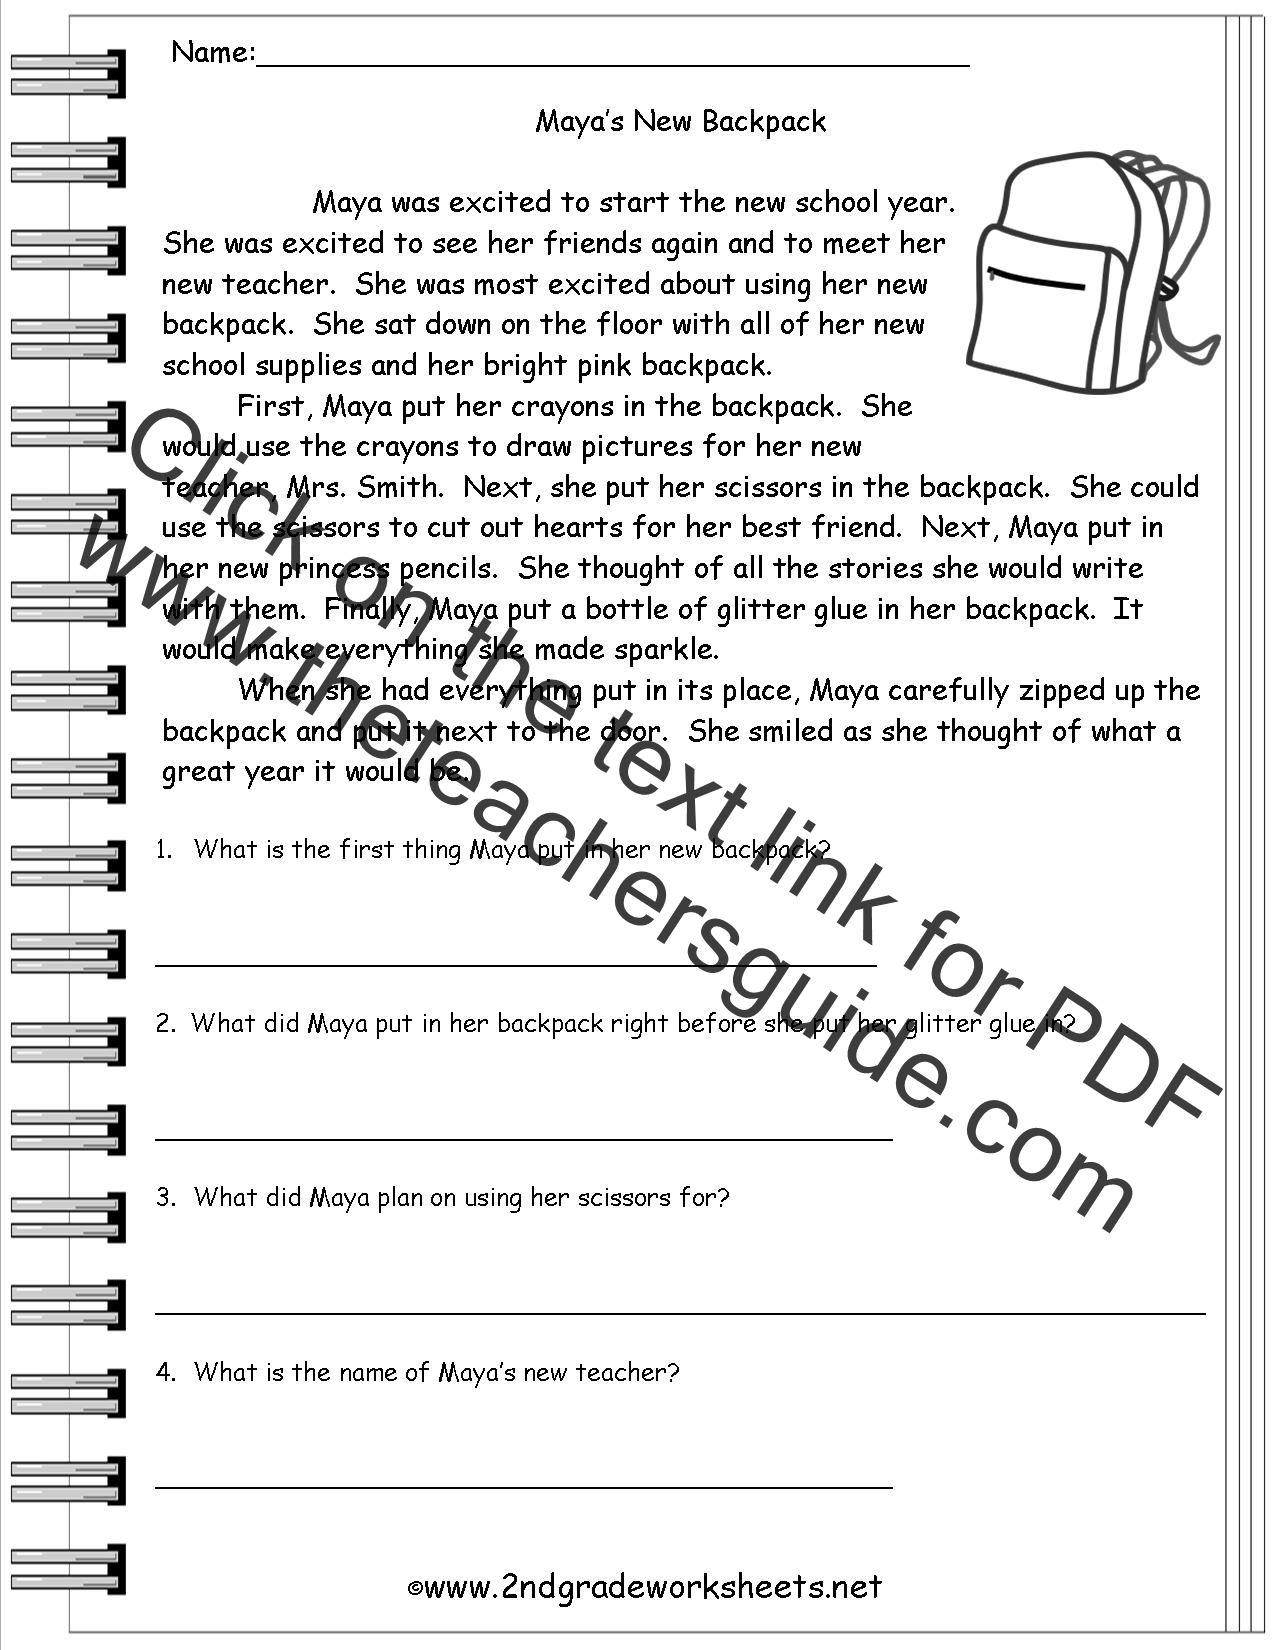 Worksheet Reading Comprehension Second Grade Worksheets reading worksheeets literature worksheets